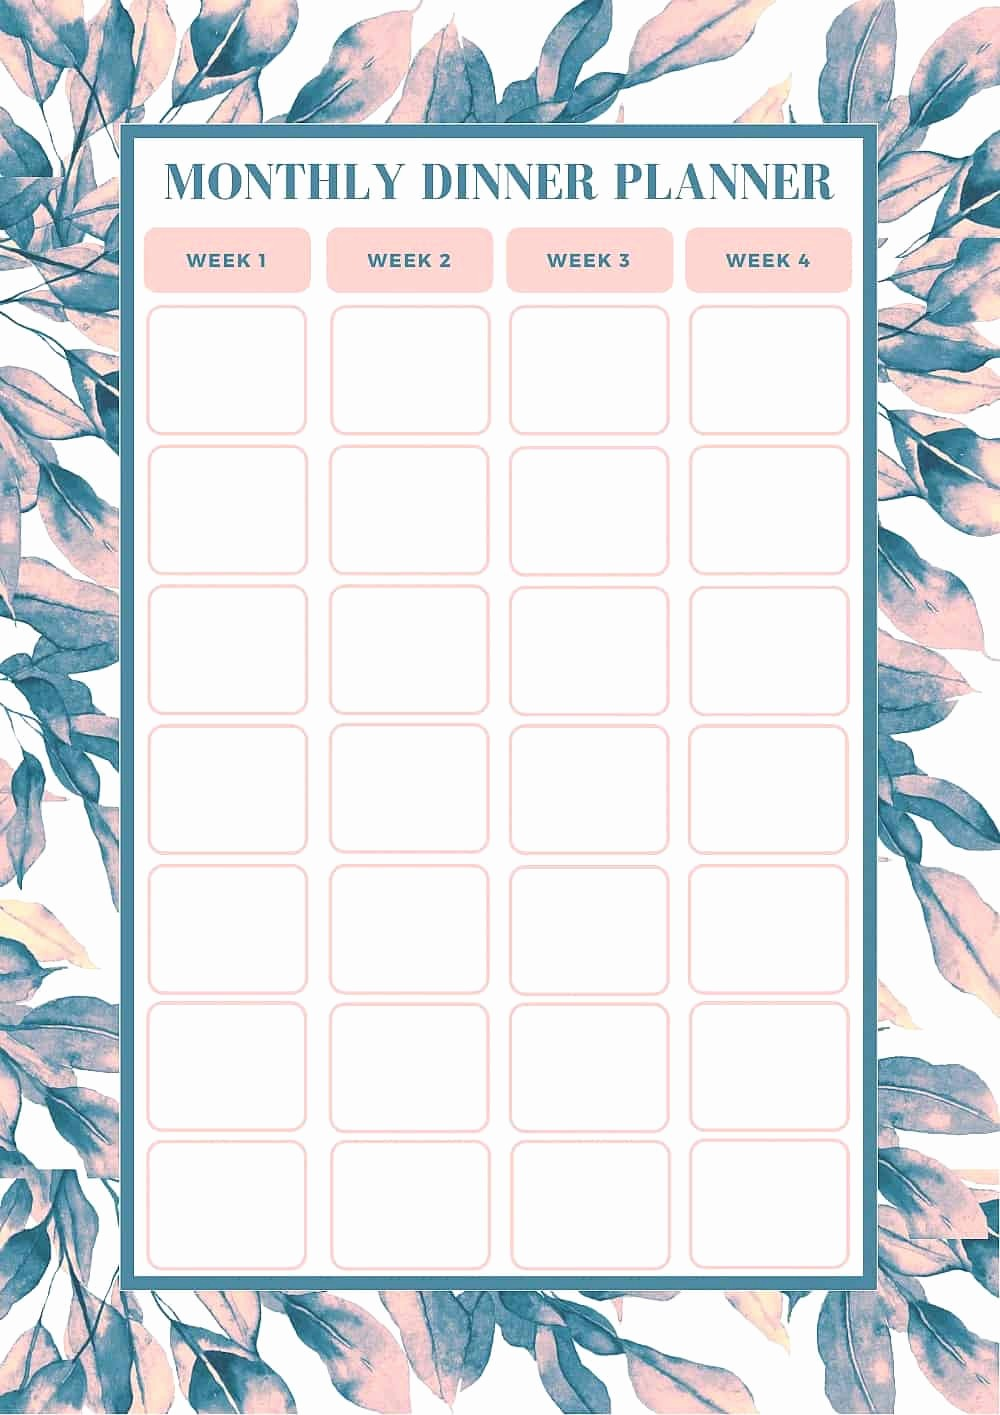 Weekly Meal Planning Template Free Awesome Free Monthly Meal Planning Template Bake Play Smile